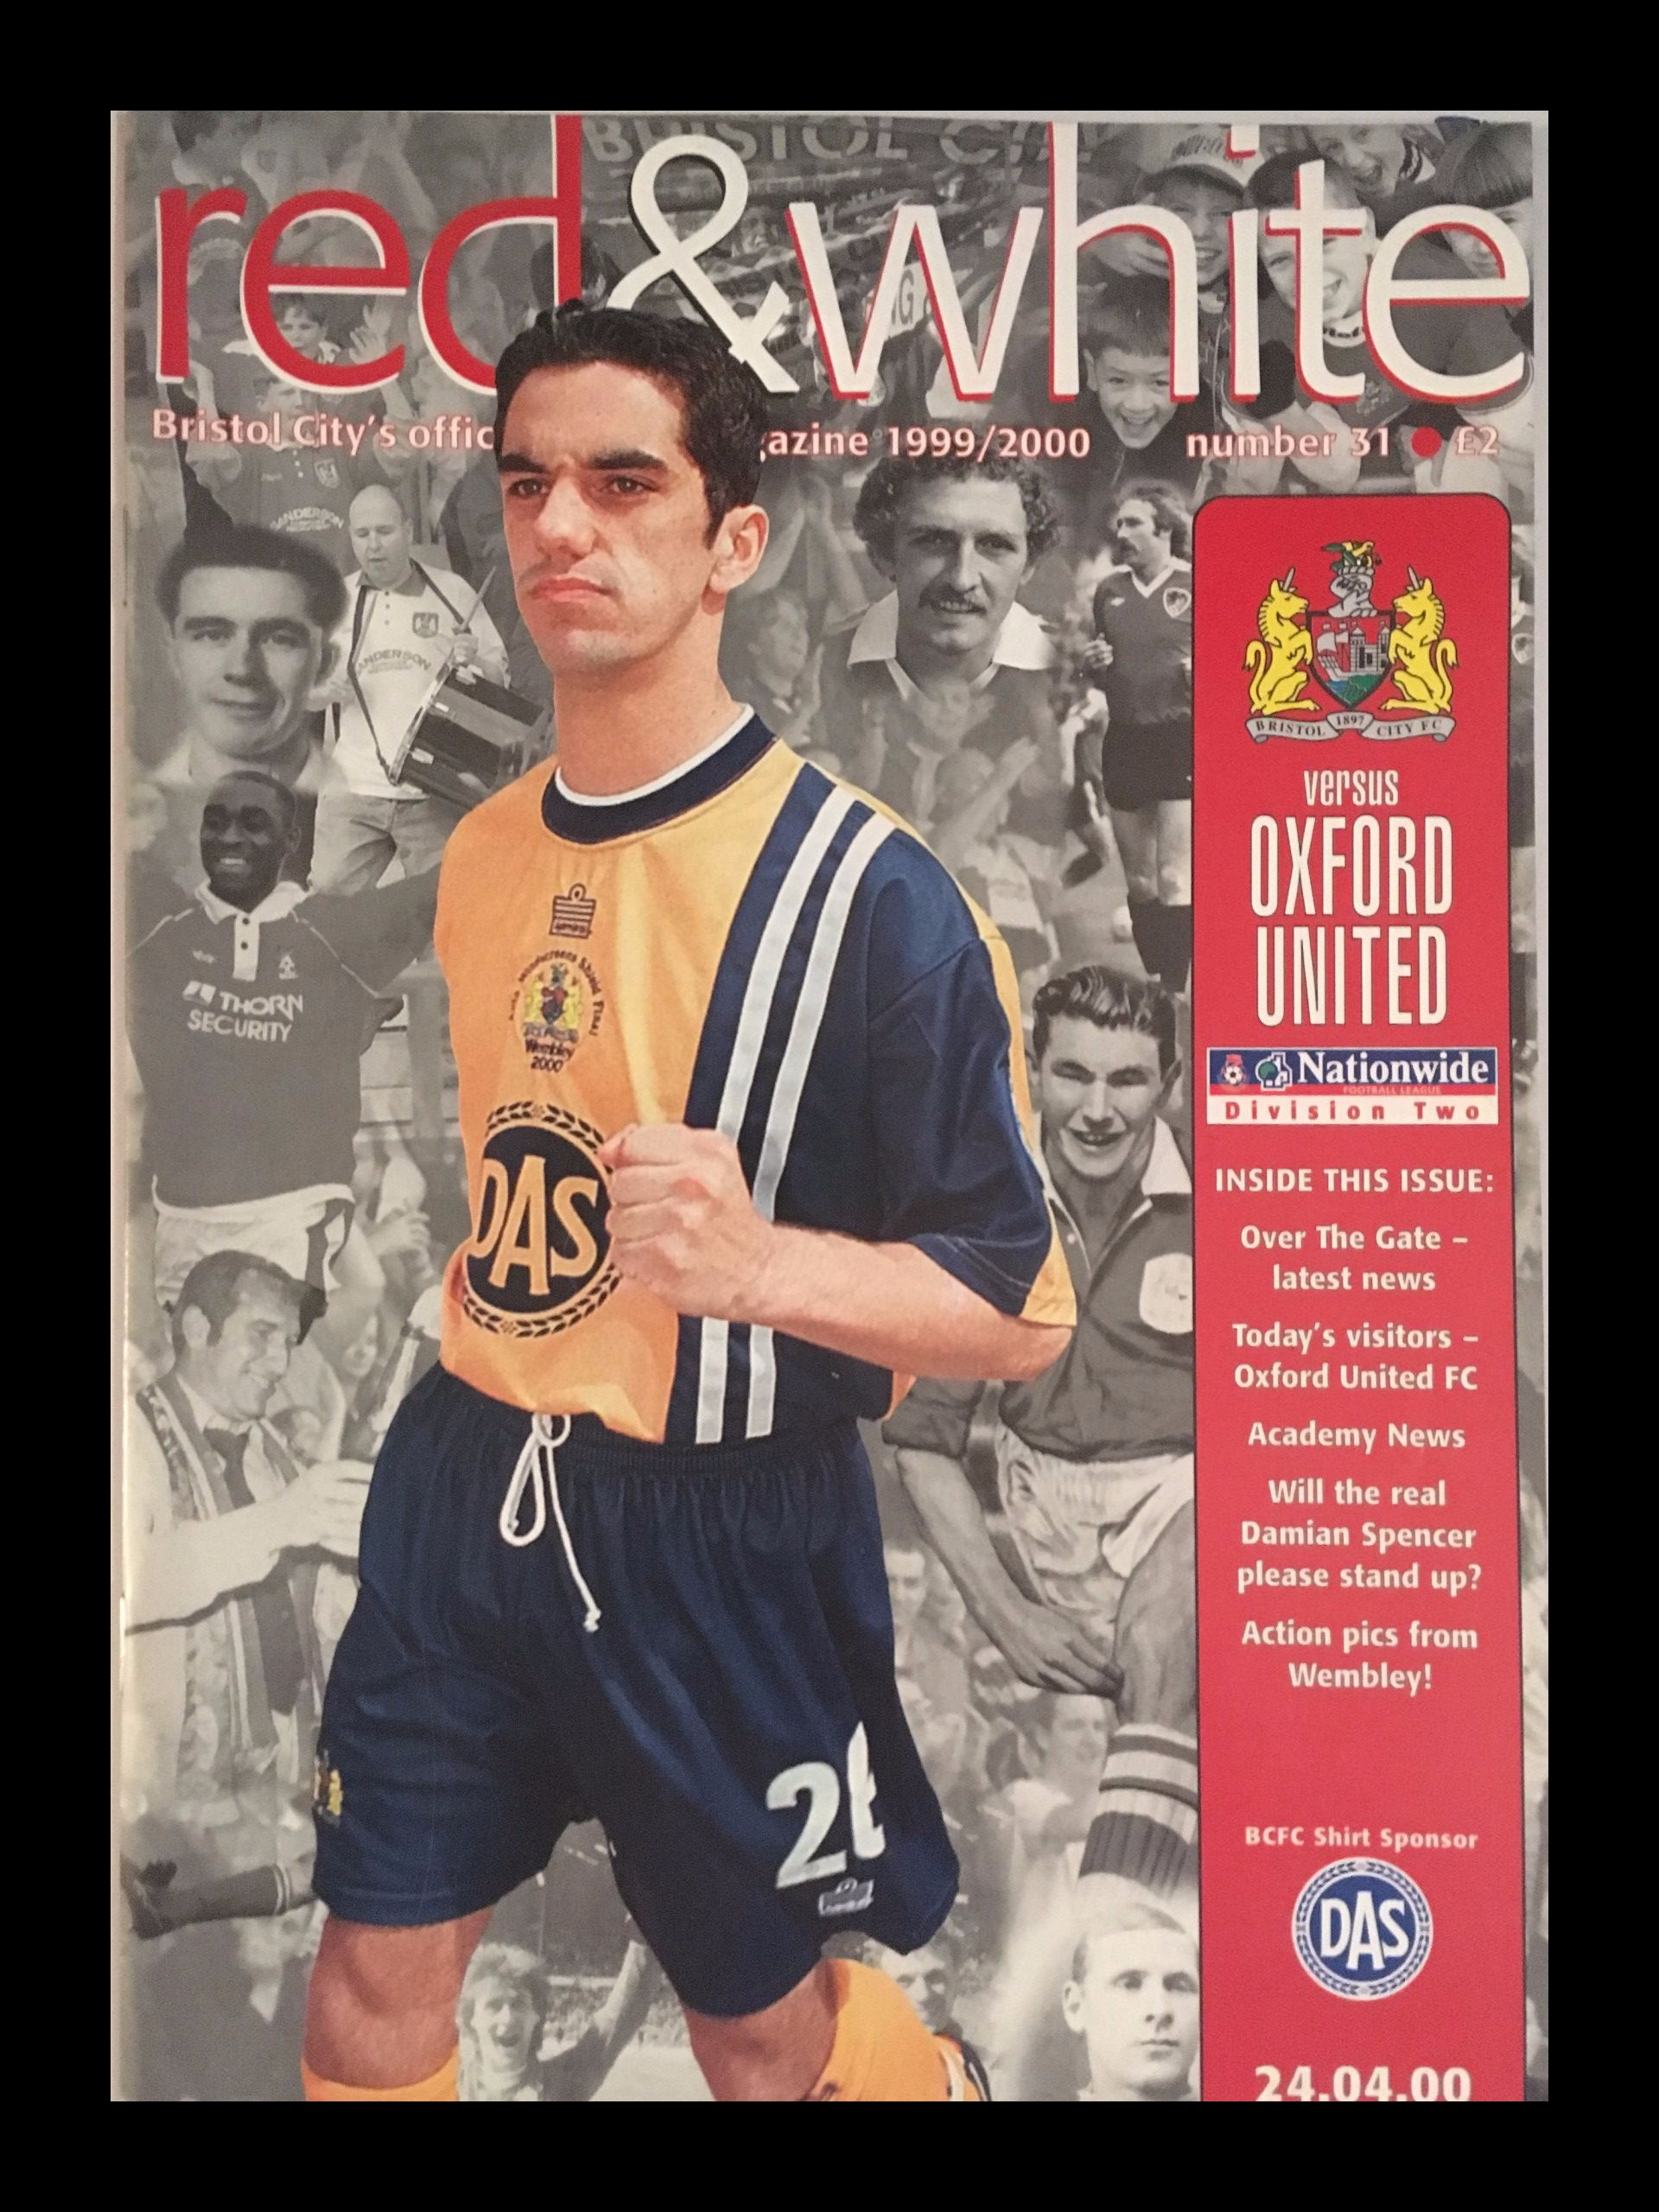 Bristol City v Oxford United 24-04-2000 Programme